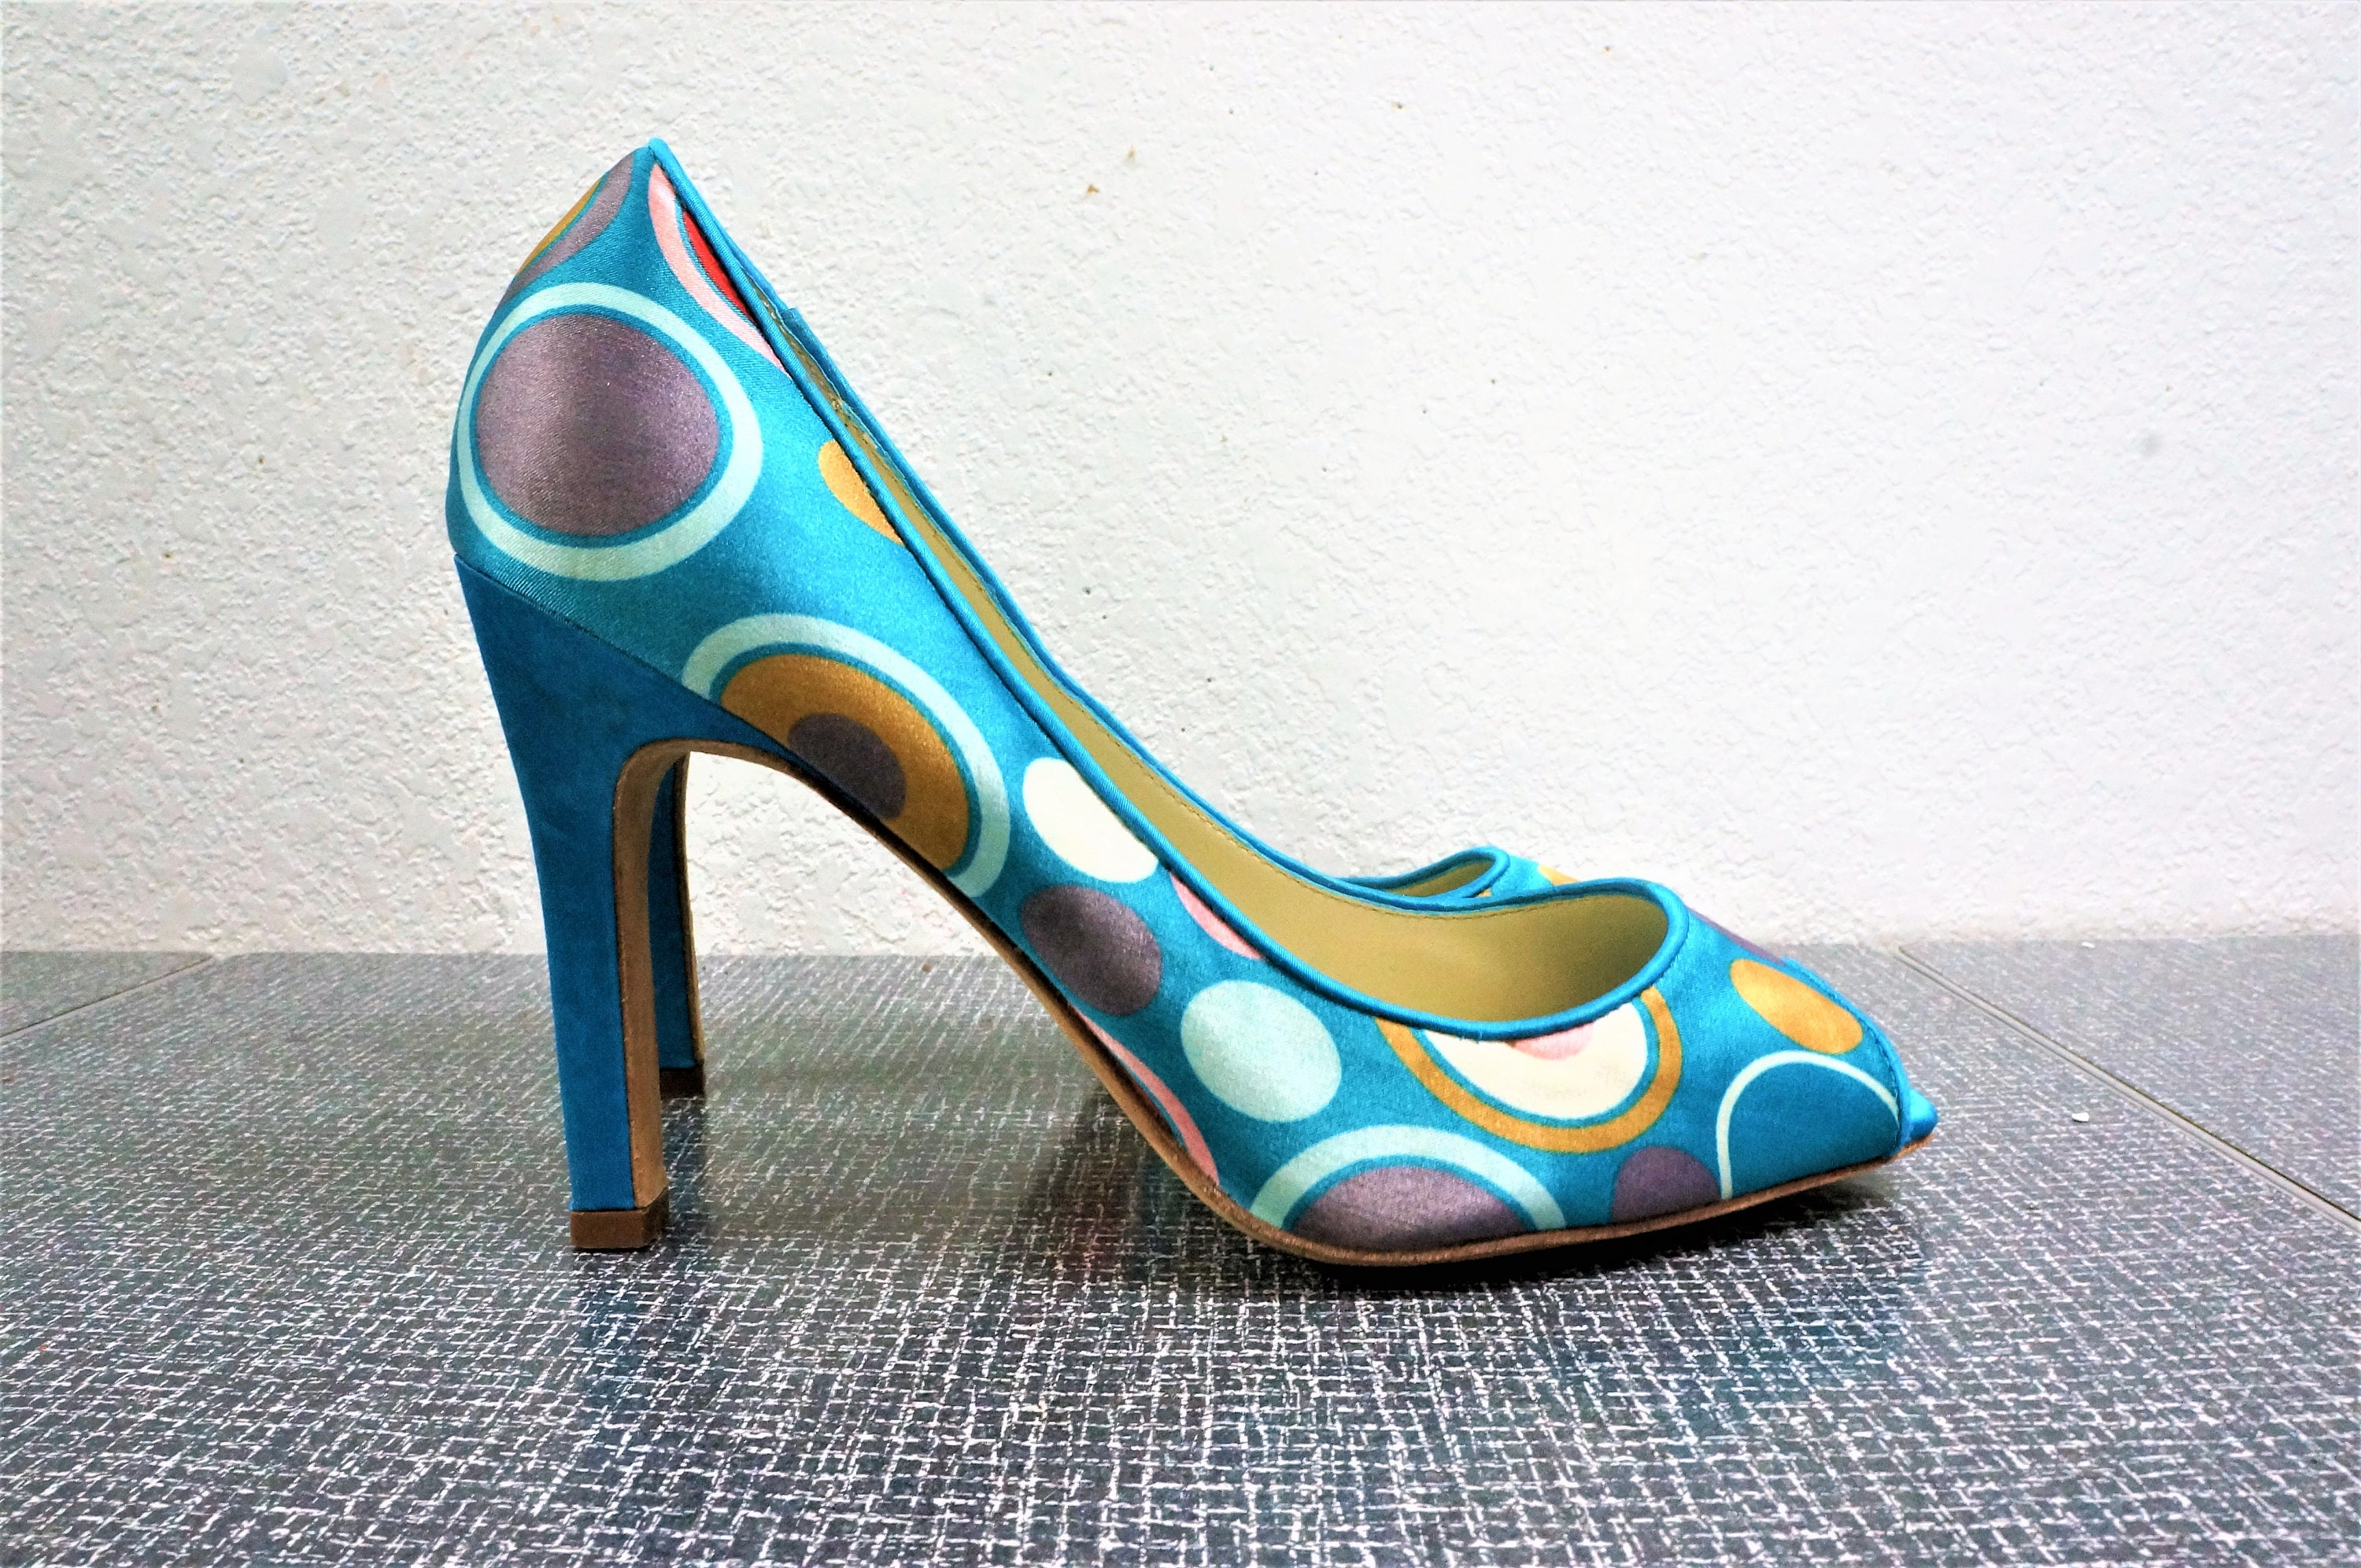 5c0cc27107e Vintage Open Toe 40's Style Pin Up Shoes - Martino Valero - Sz 6.5 - 90's  does 40's Op Art Mod Print Silky Satin High Heels